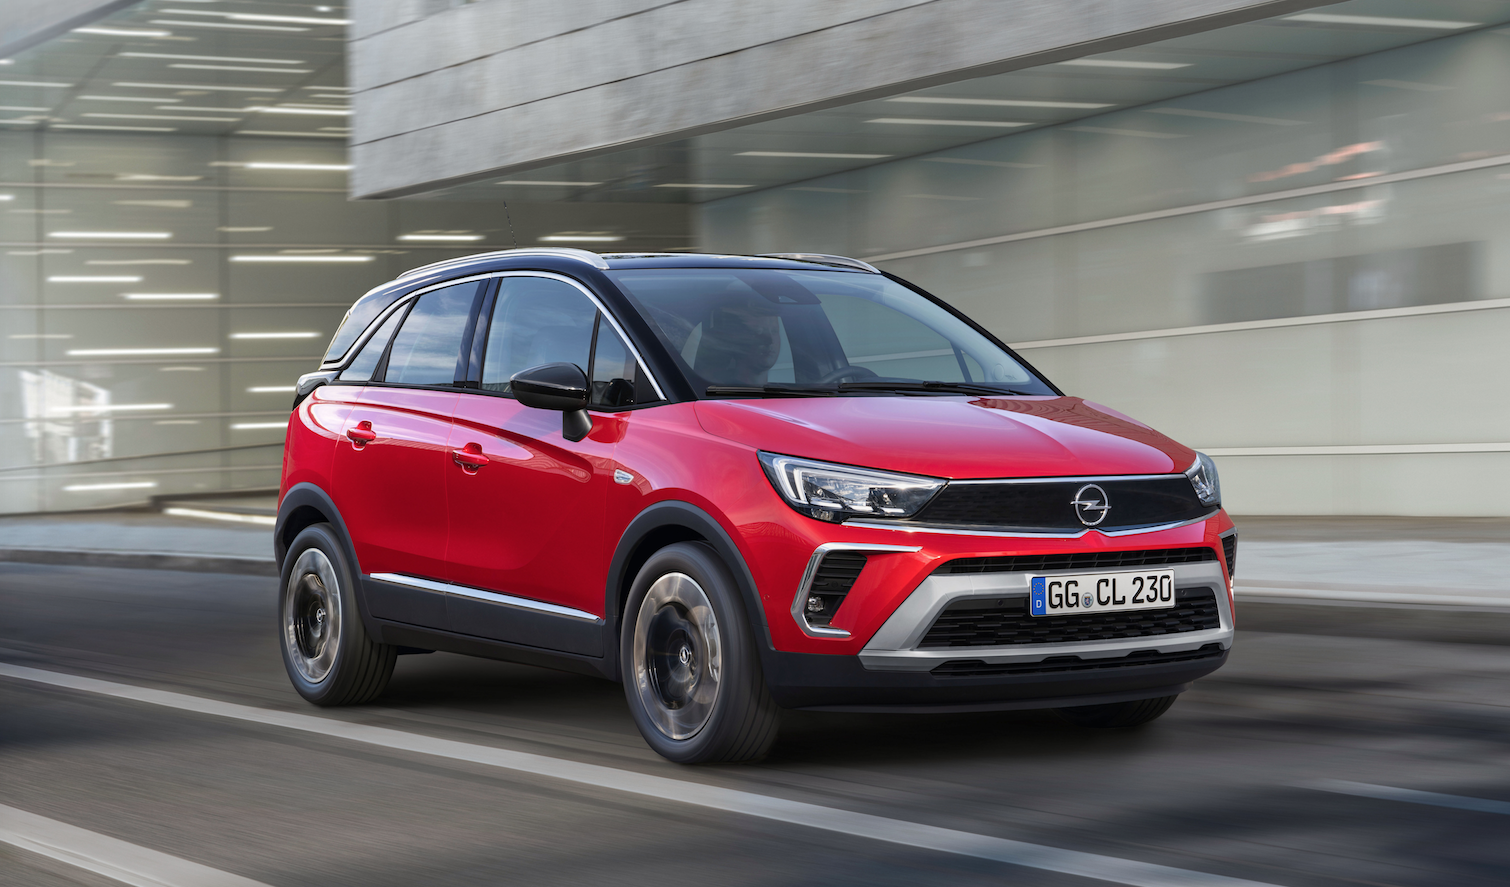 All-new Opel Crossland arrives in Ireland early 2021